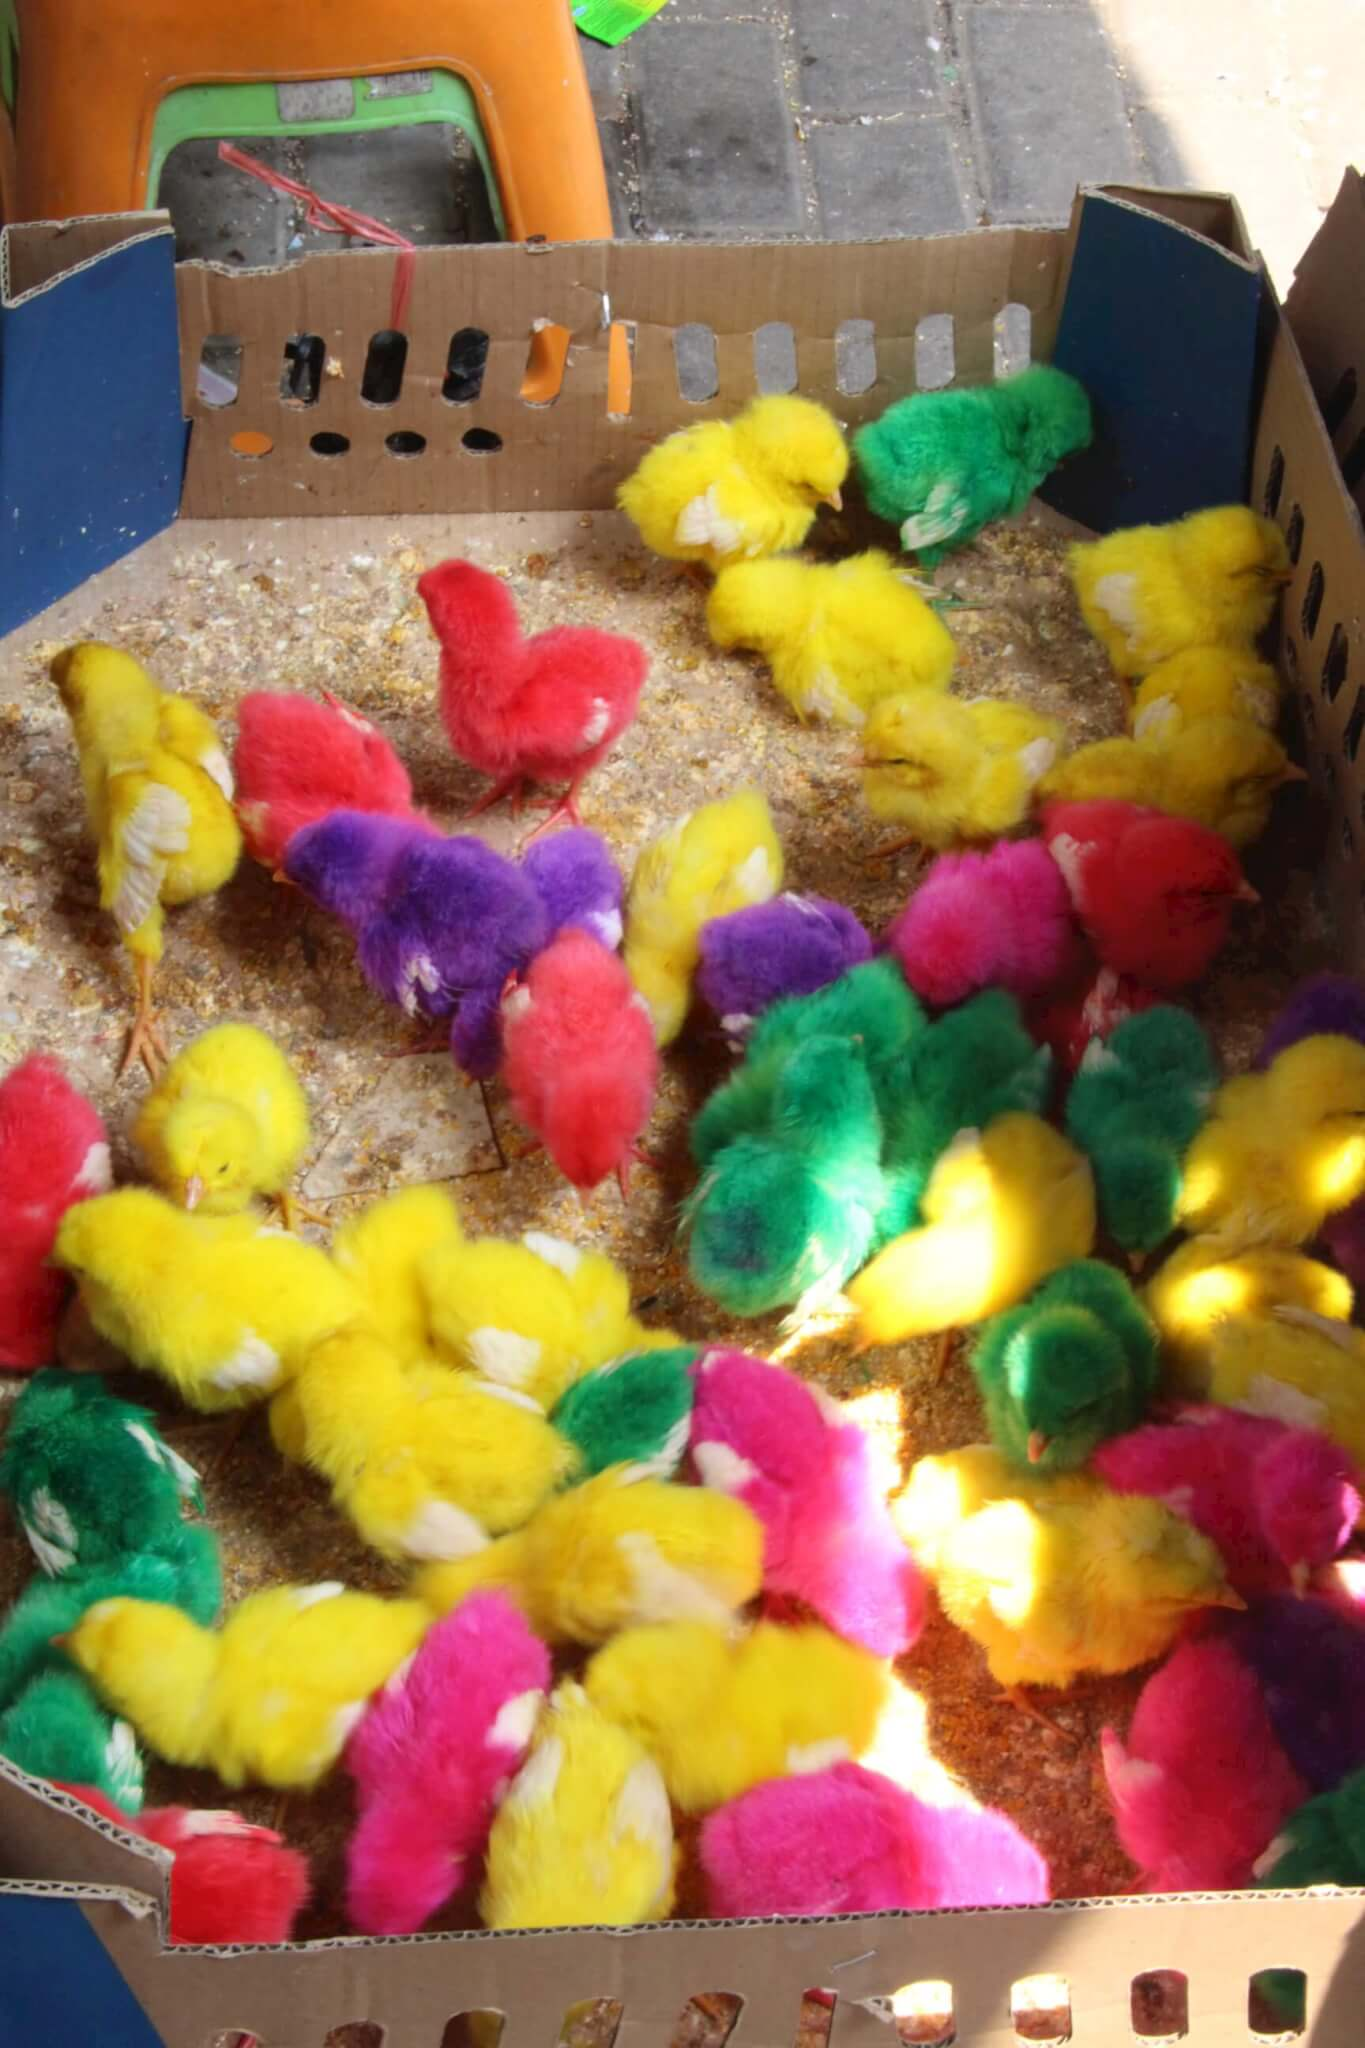 Horrific Video Shows Baby Chicks Roughly Tossed, Dyed Bright Colors